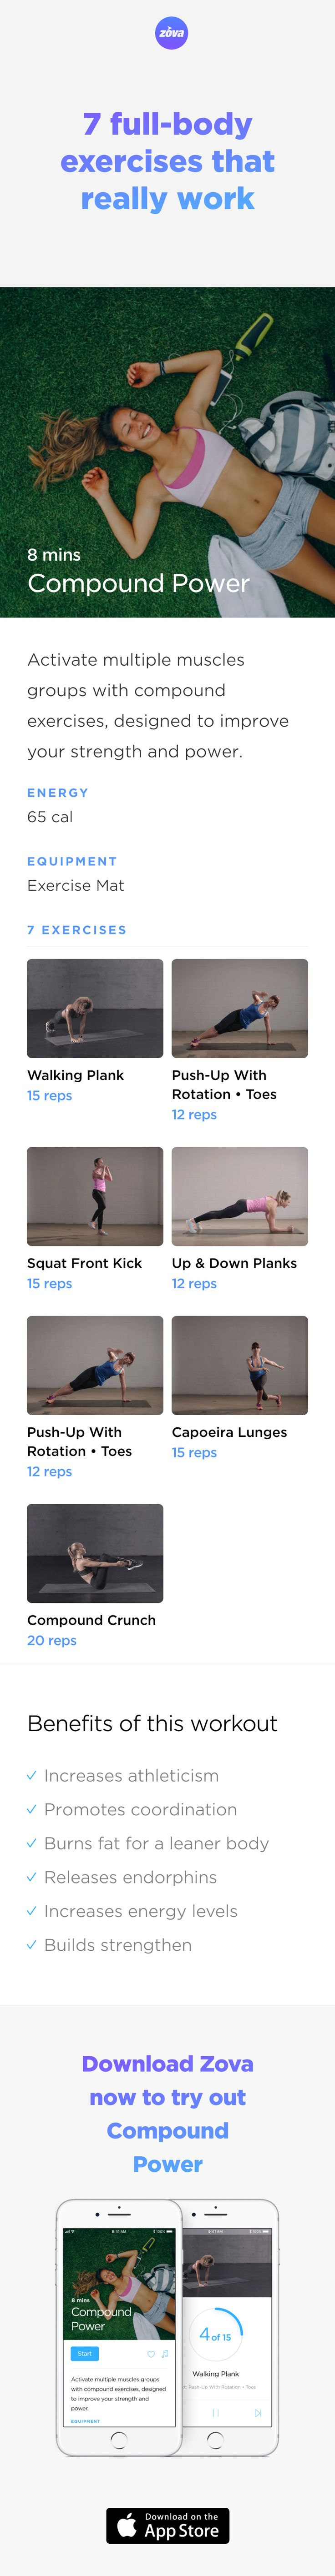 You don't need to workout for hours and diet every day to stay fit. You just need to eat well and find the right workout to do regularly. These seven compound exercises have been selected because they'll give you results, quickly. You'll feel healthier, leaner and fitter in less than 10 minutes a day. #HIIT #fitness #workout #fullbody #sweat